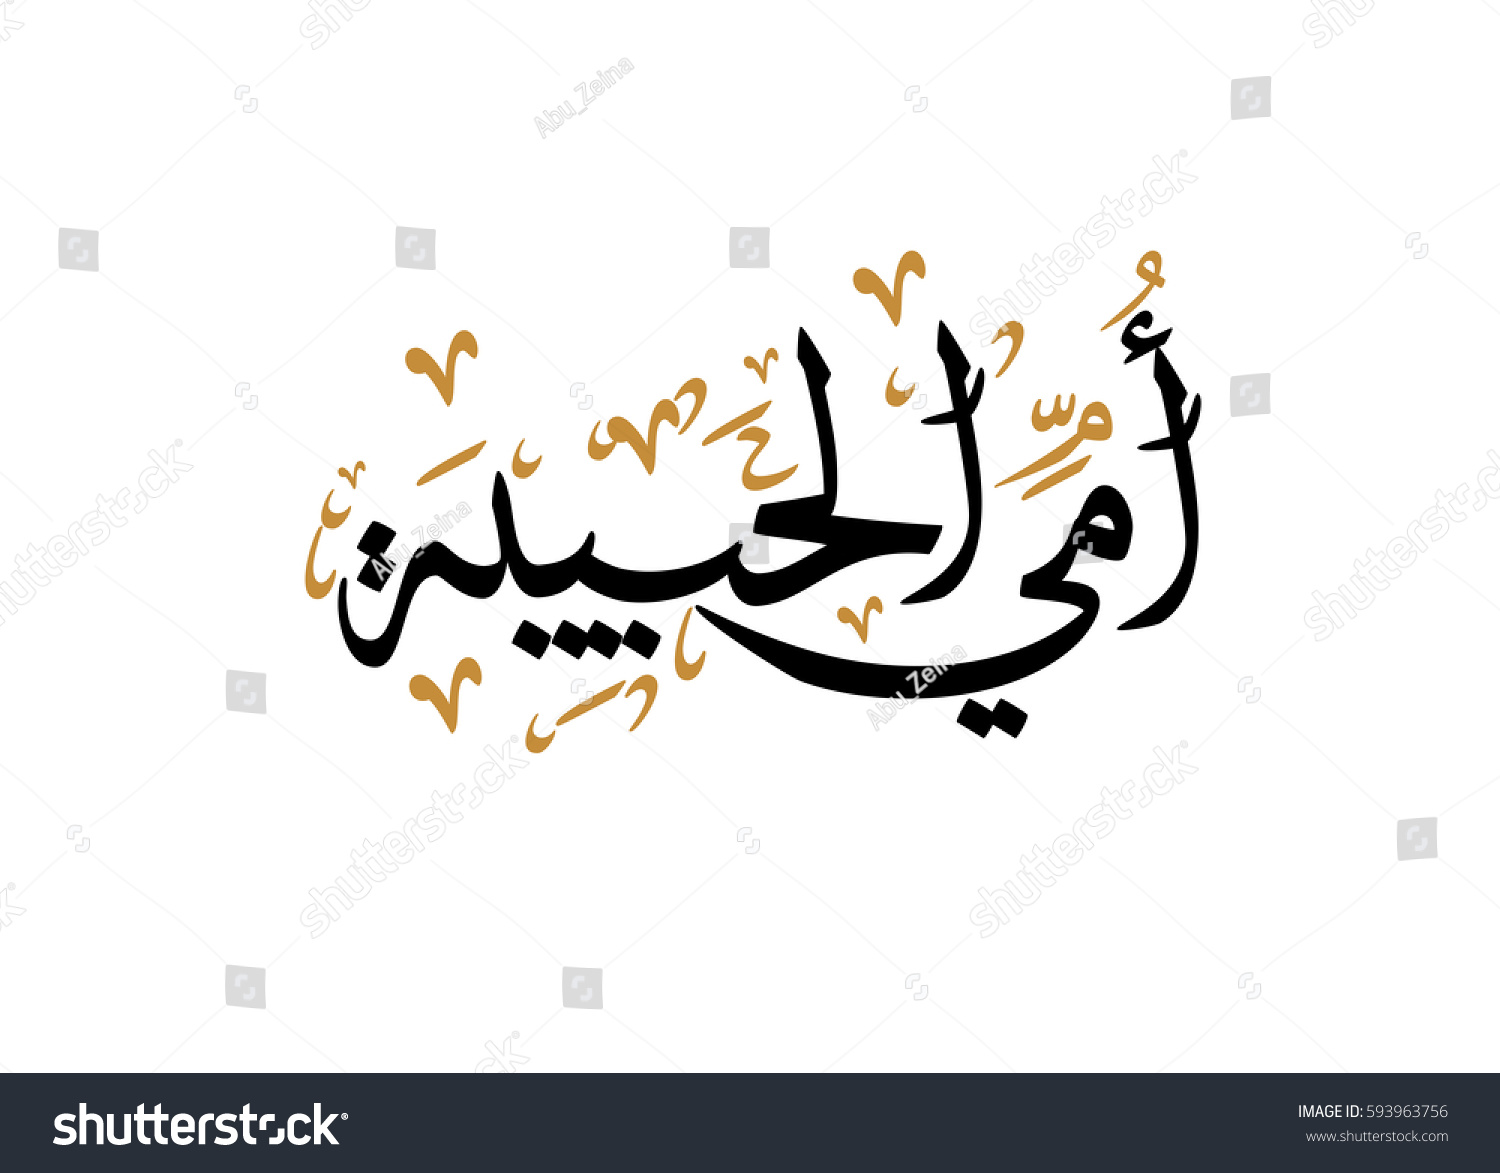 Arabic calligraphy love you mom calligraphy stock vector I love you calligraphy